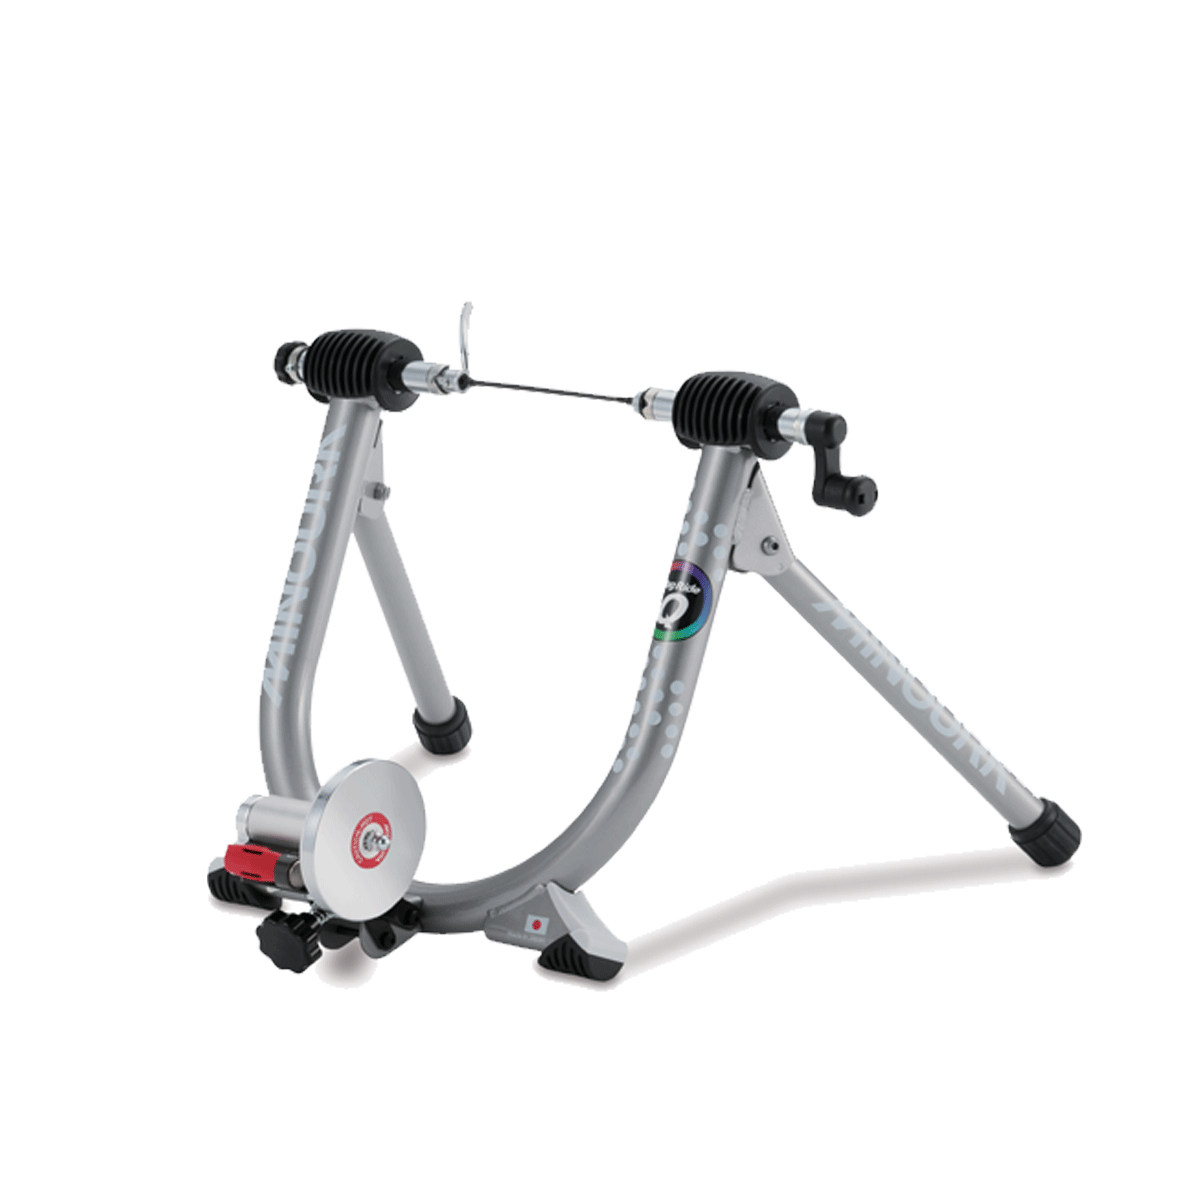 Minoura Mag Ride Q Trainer: Silver - Perfect for Wide Range of Training Session Types